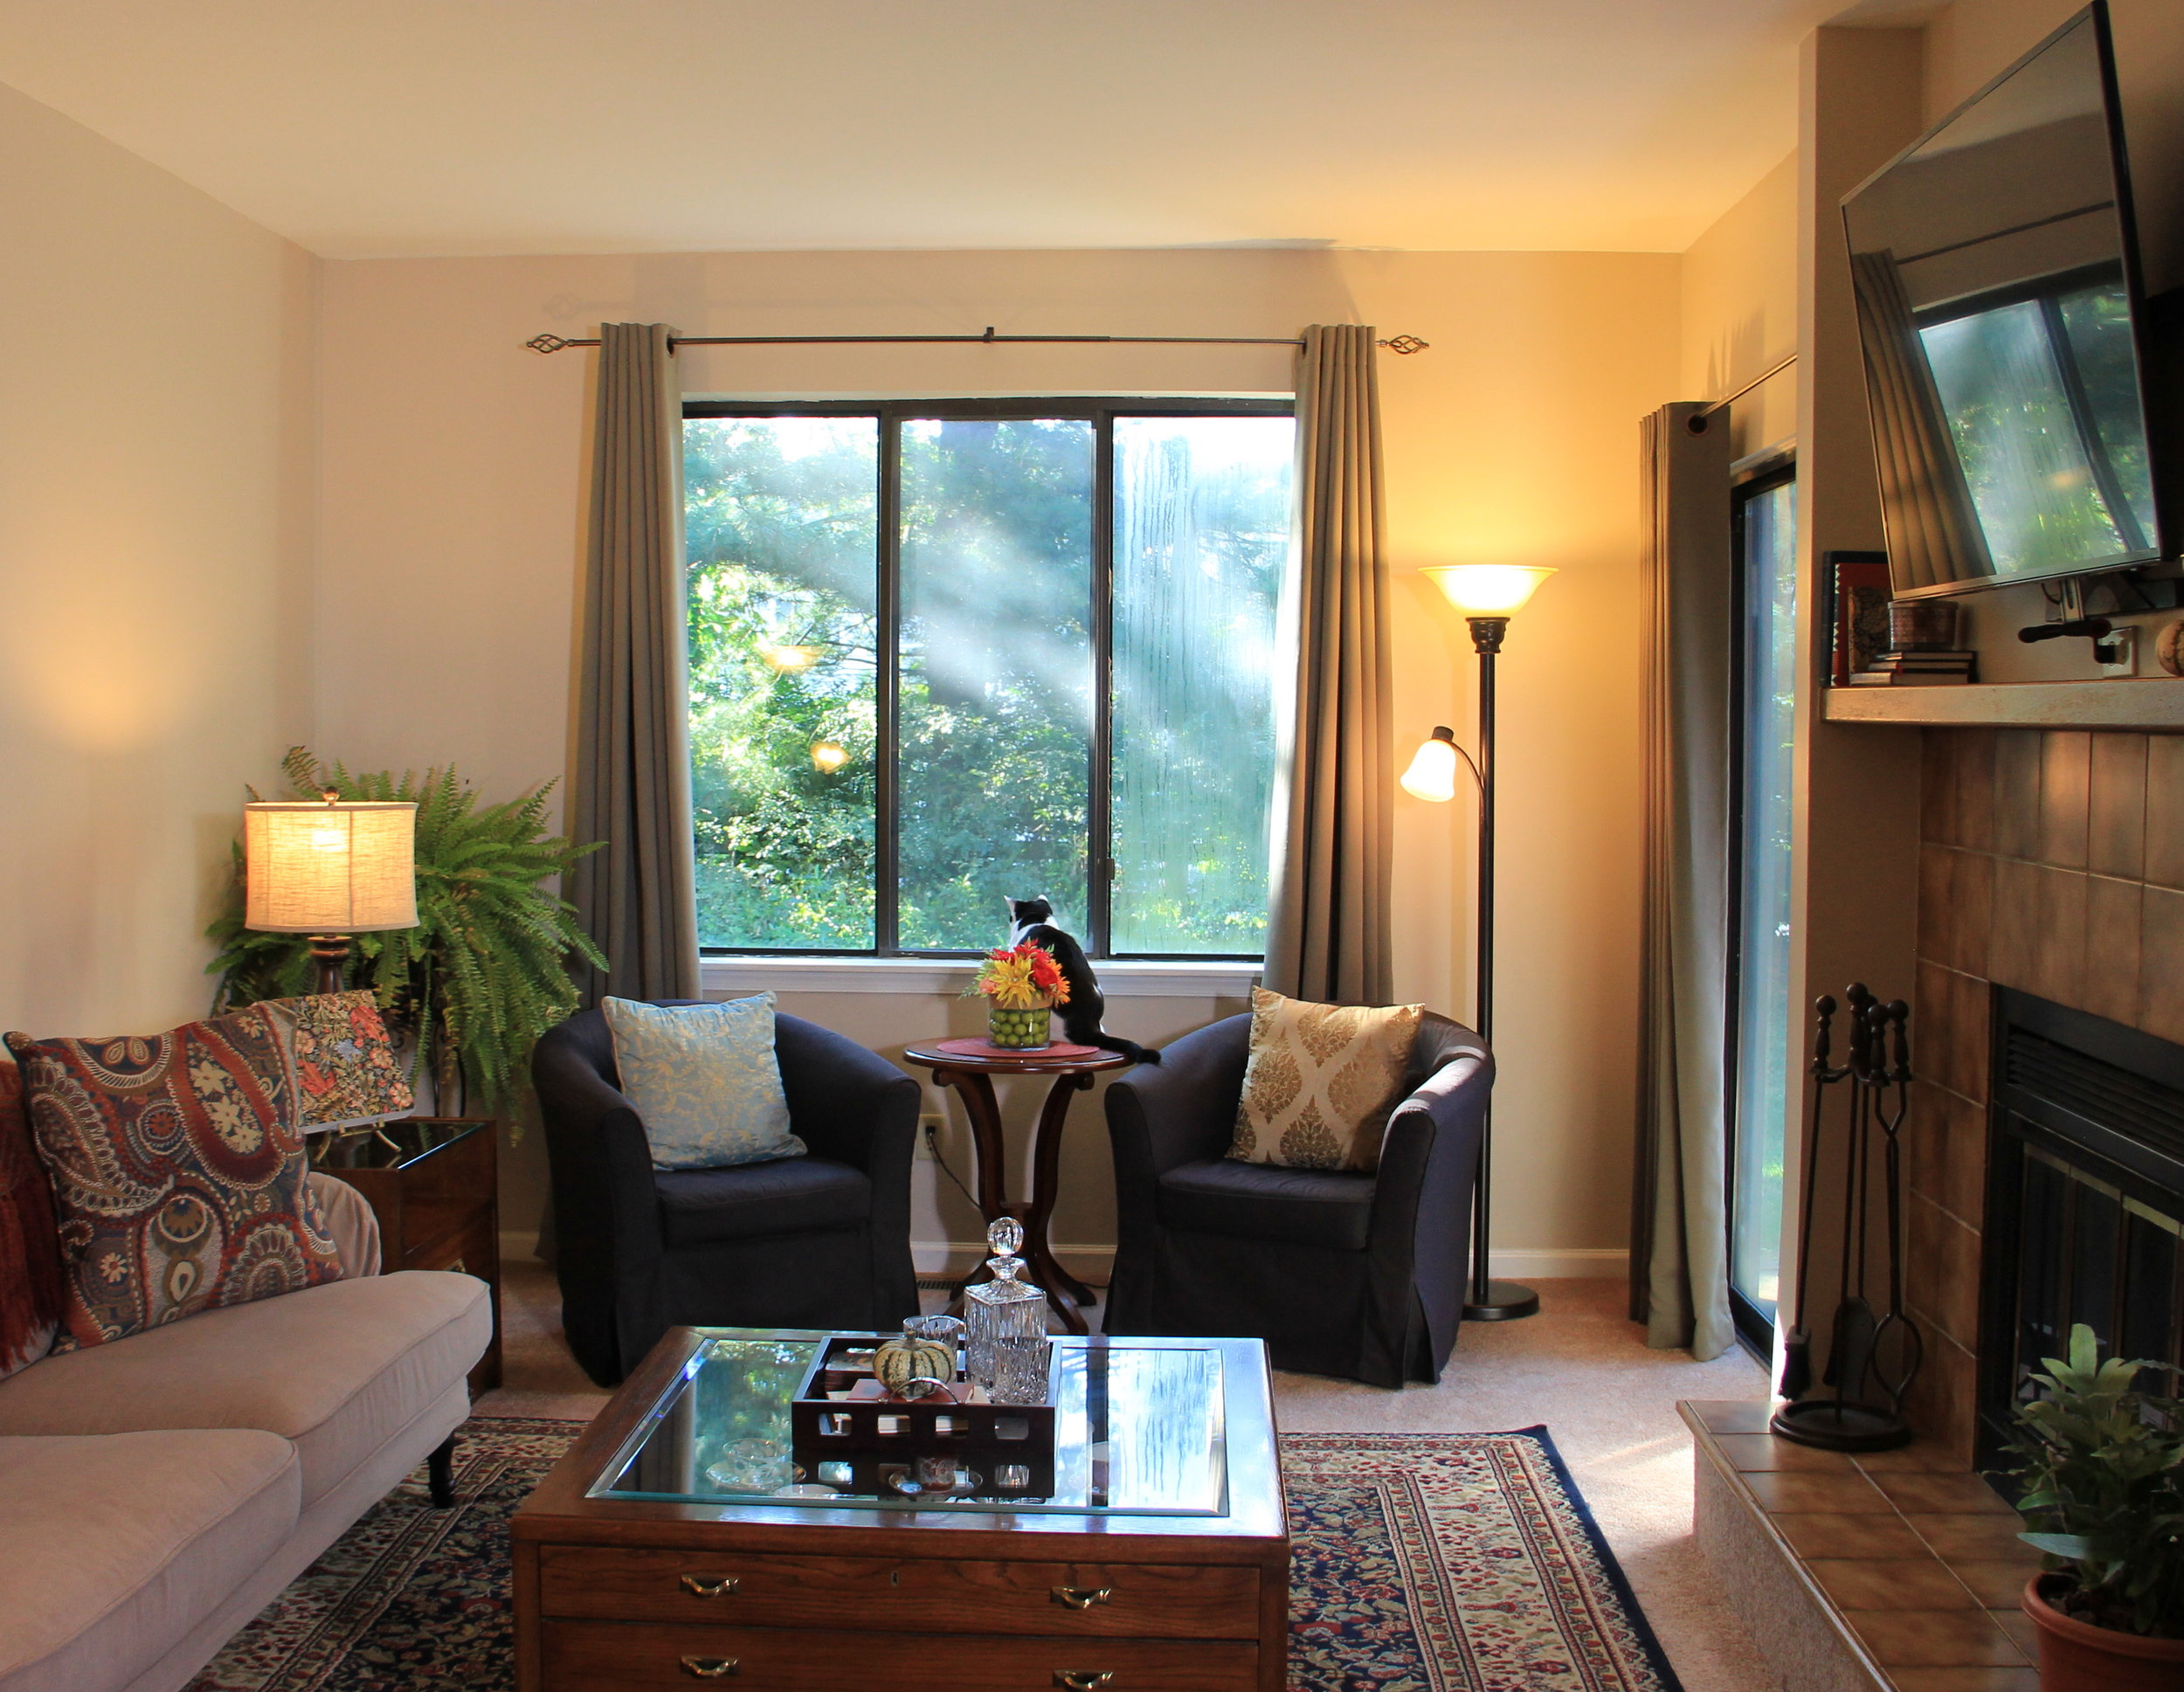 A similar view of our living room, with window treatments and furniture. Doesn't it make a HUGE difference?